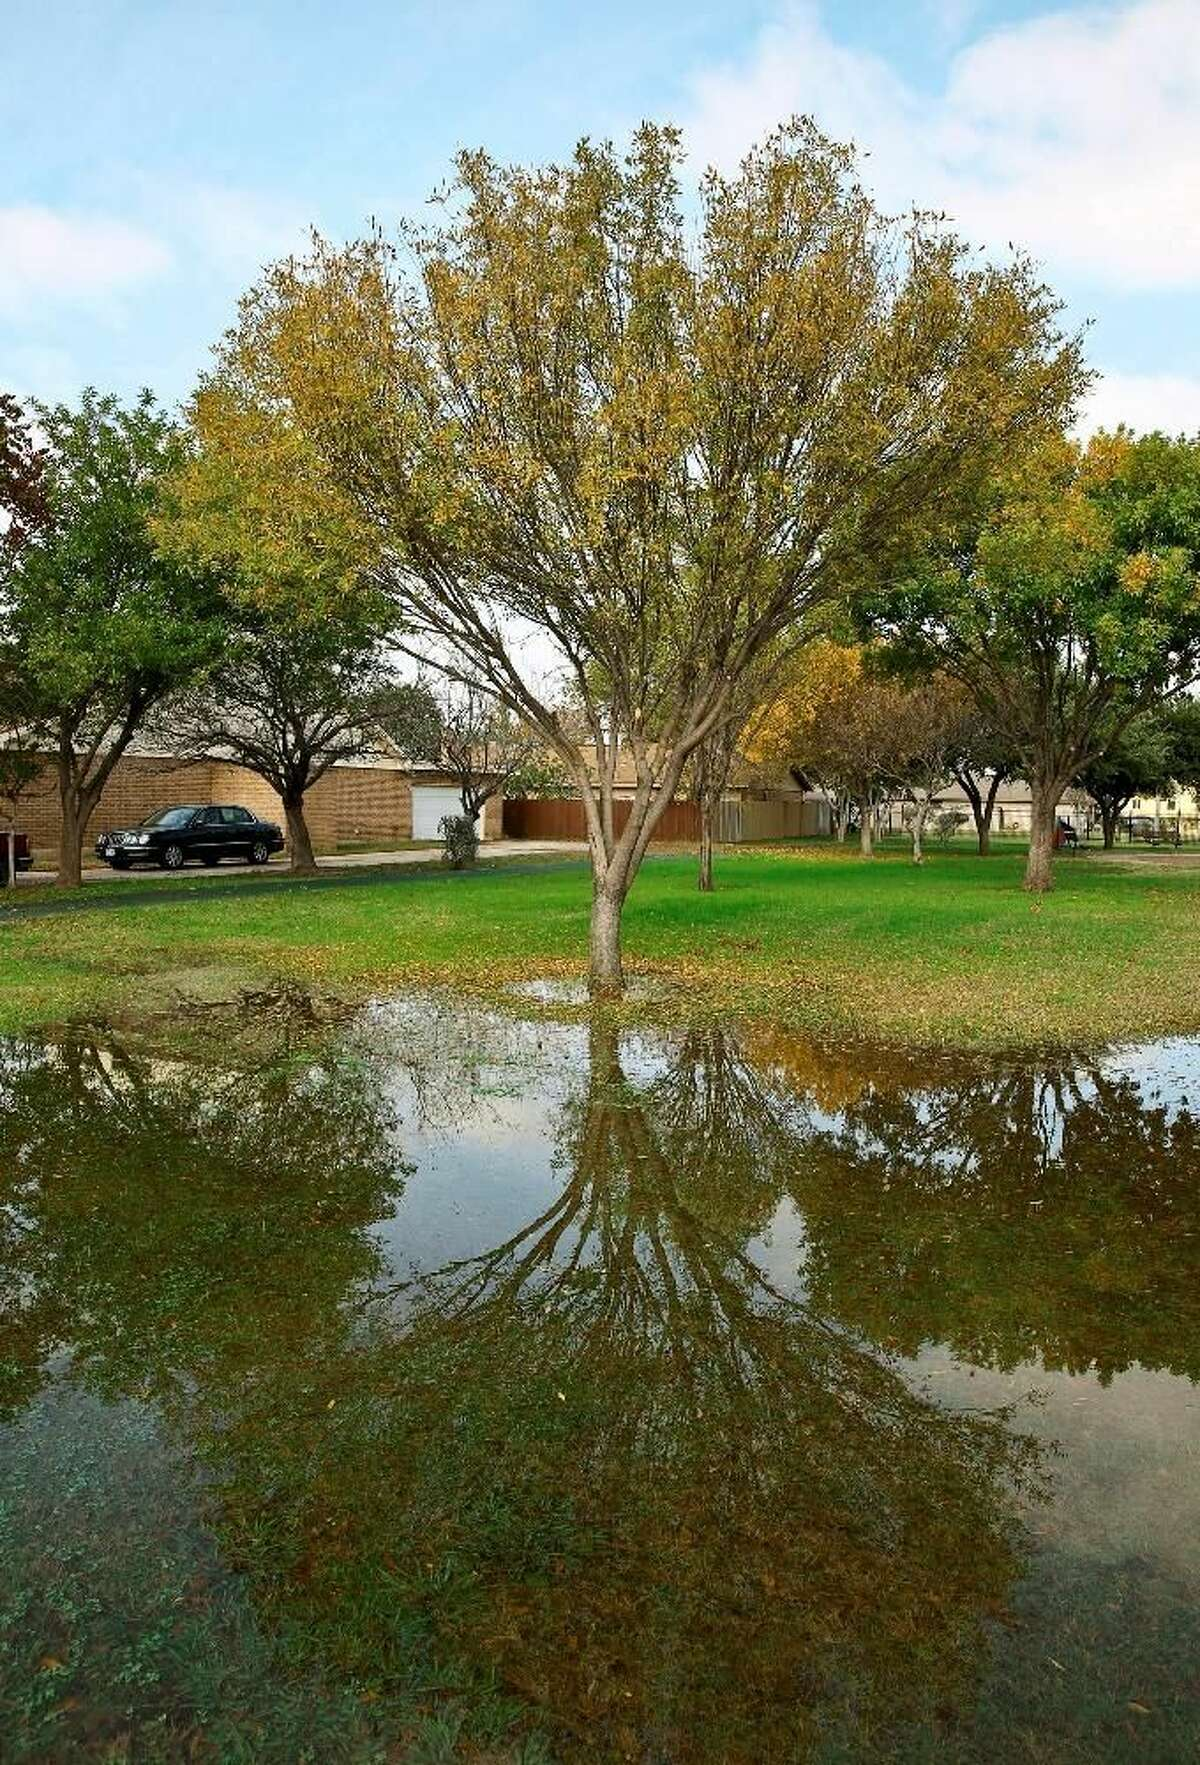 A tree's reflection is shown in a large puddle of water at Blas Castaneda Park on Sunday. Photo by Victor Strife